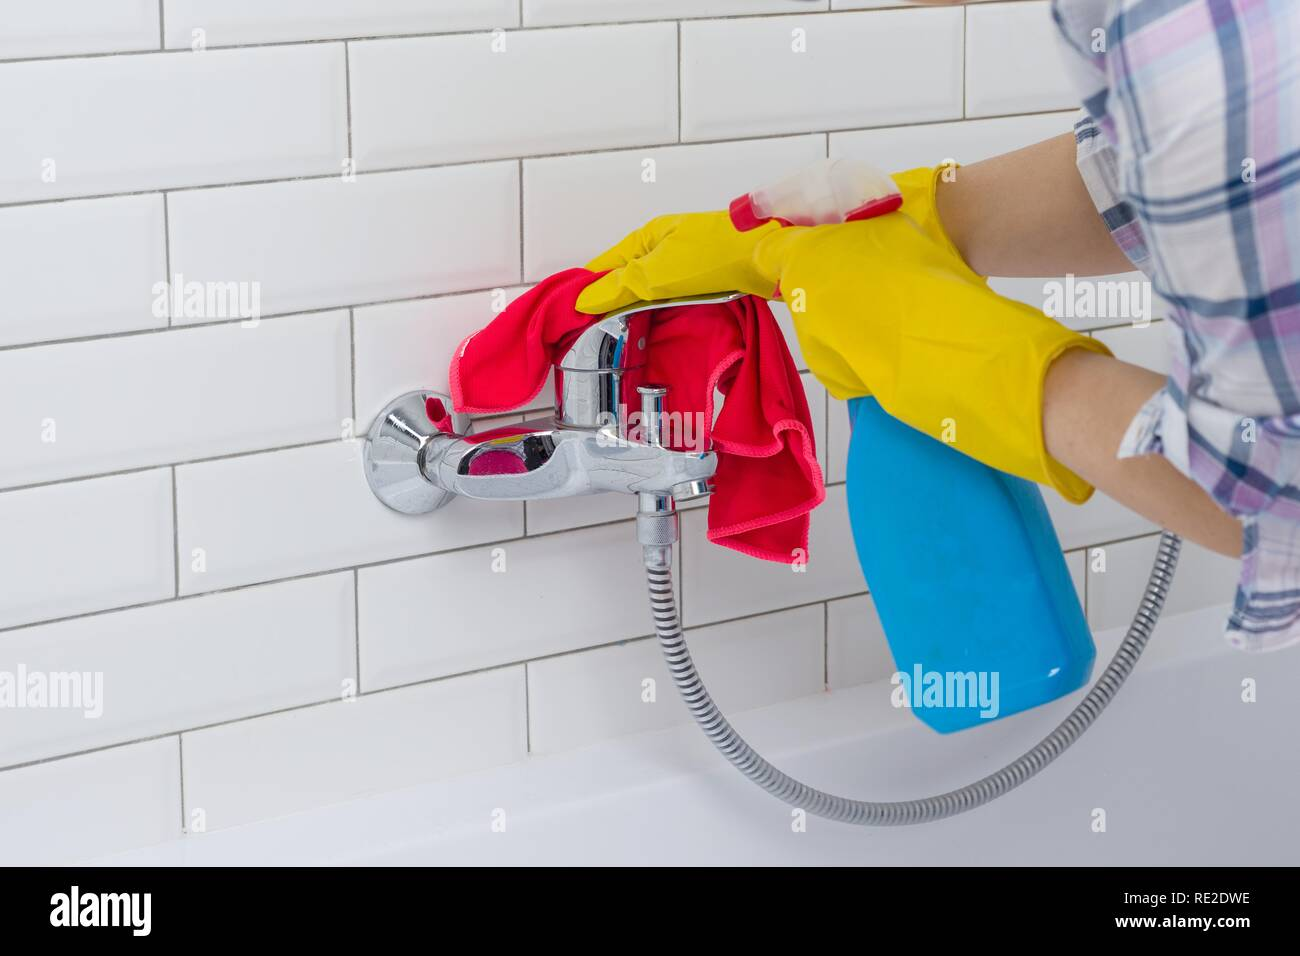 Housework and domestic lifestyle. Woman doing chores in bathroom at home, cleaning wash basin and tap with spray detergent. Stock Photo